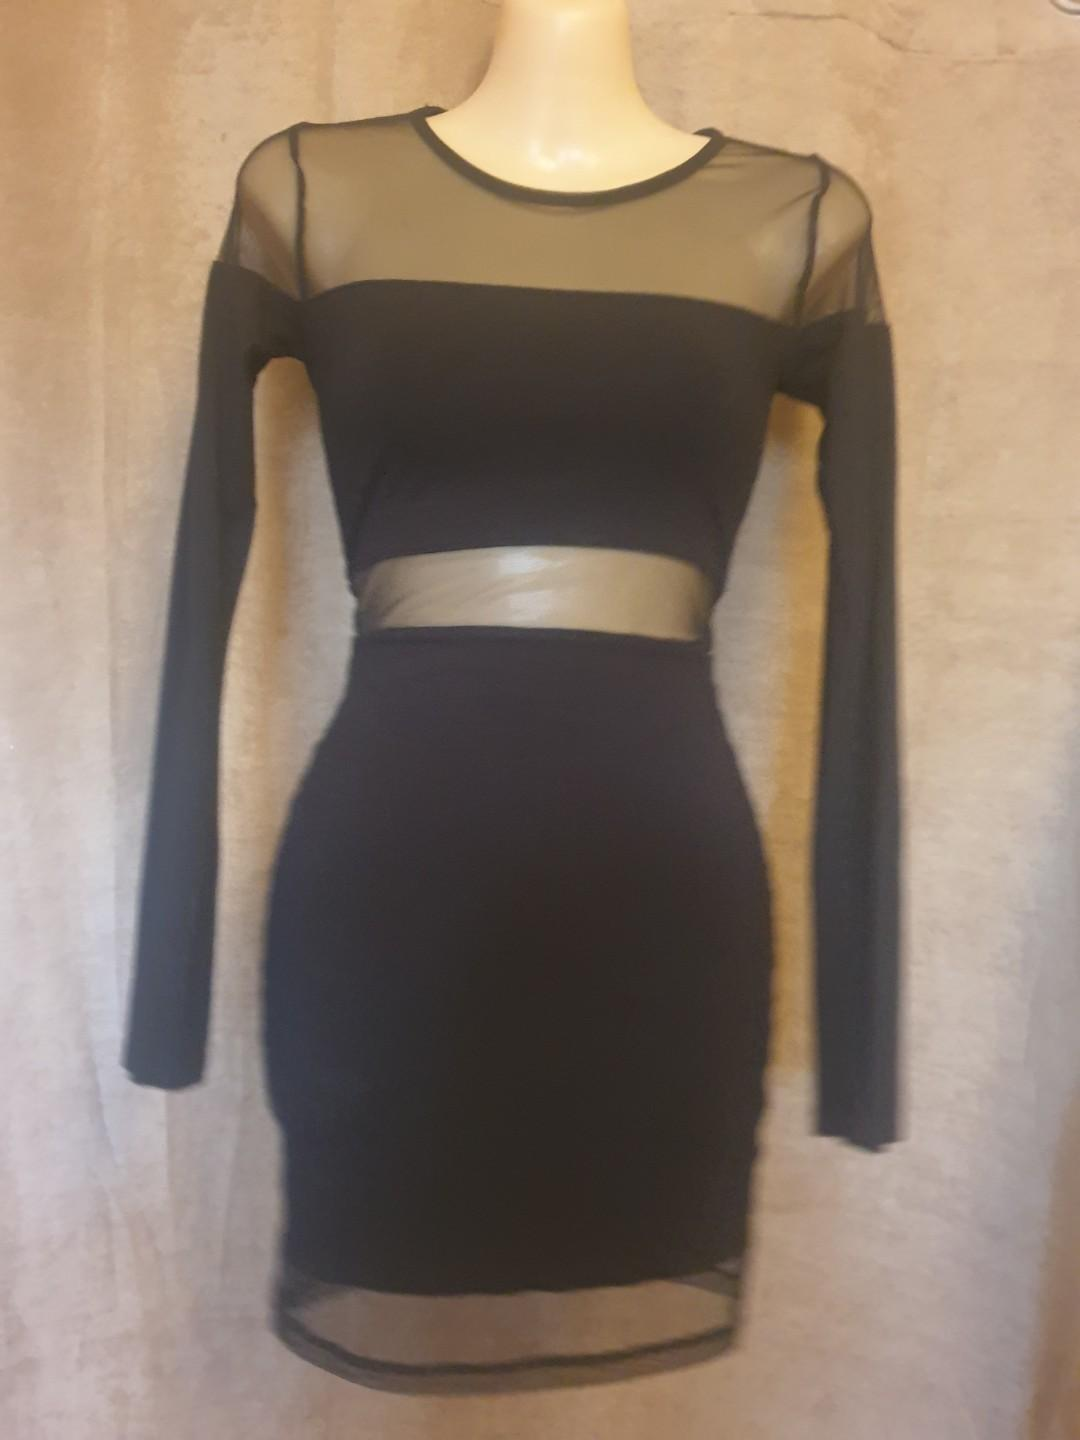 Sexy Black Bodycon Sheer Long Sleeve Dress Size XS Good Condition